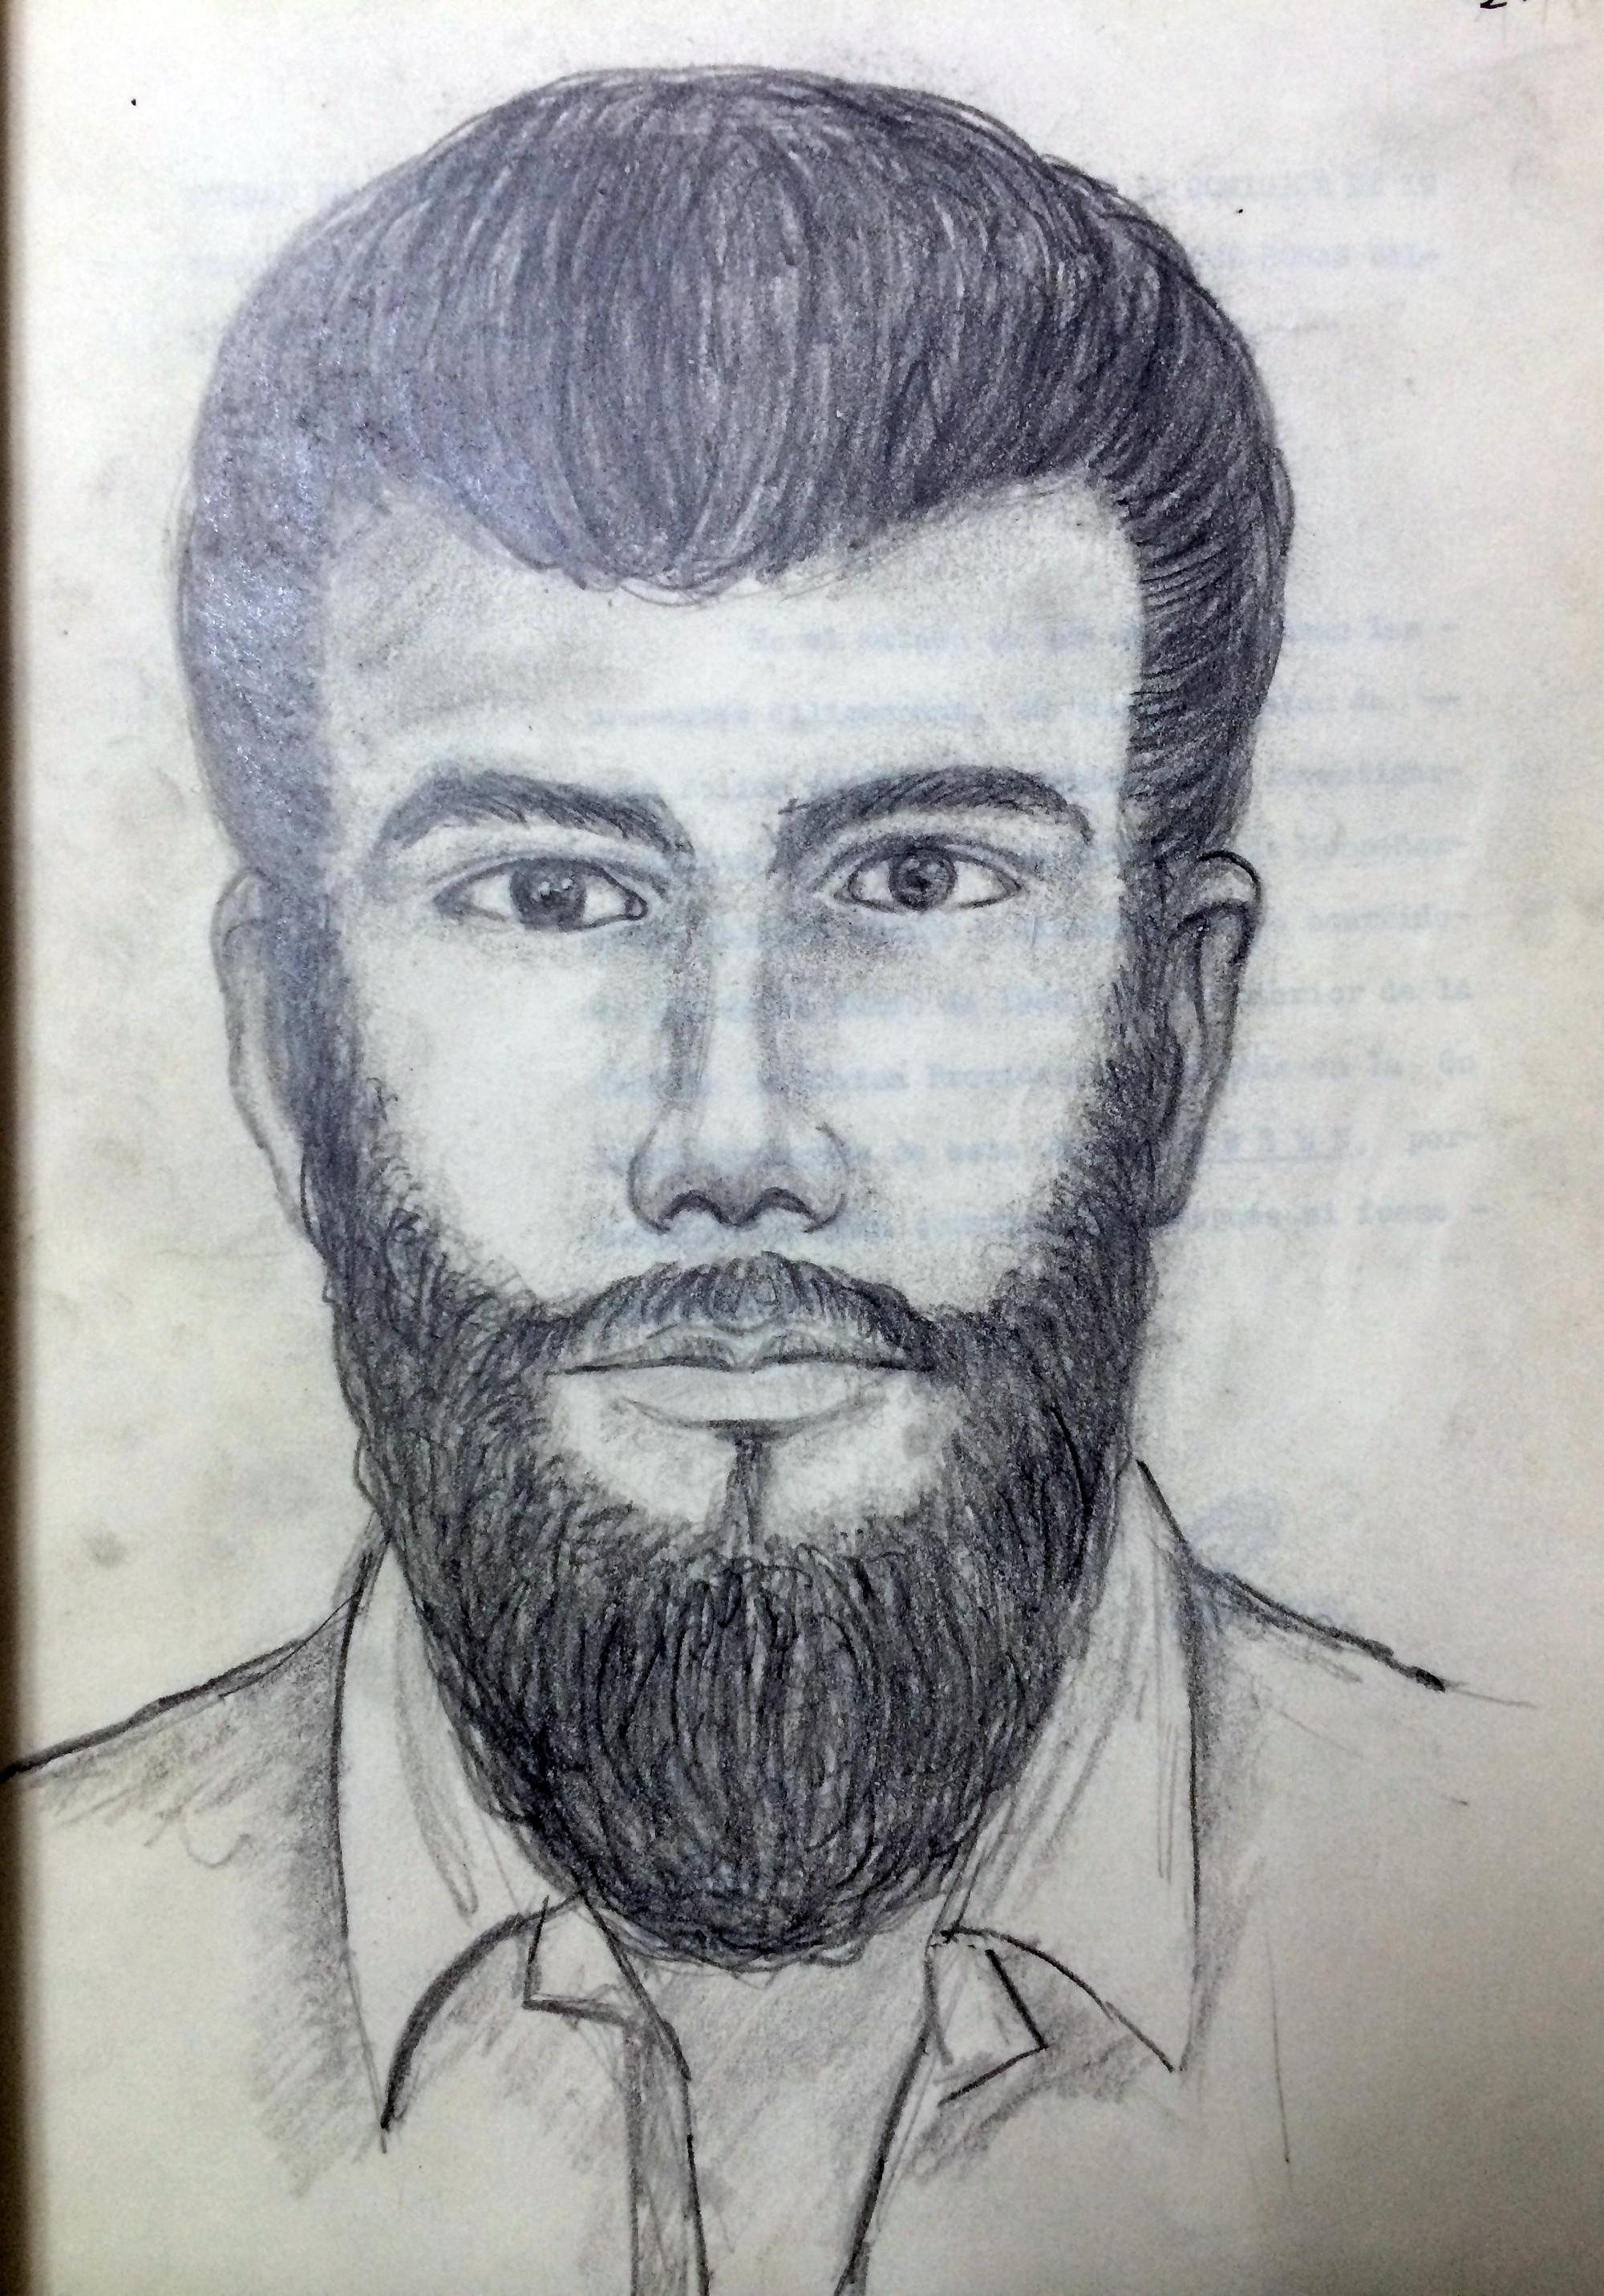 Sketch drawn from recollections of witnesses of the alleged assassin, who shot Monseñor Romero from outside the Divine Providence chapel. Photo from El Faro's archive.